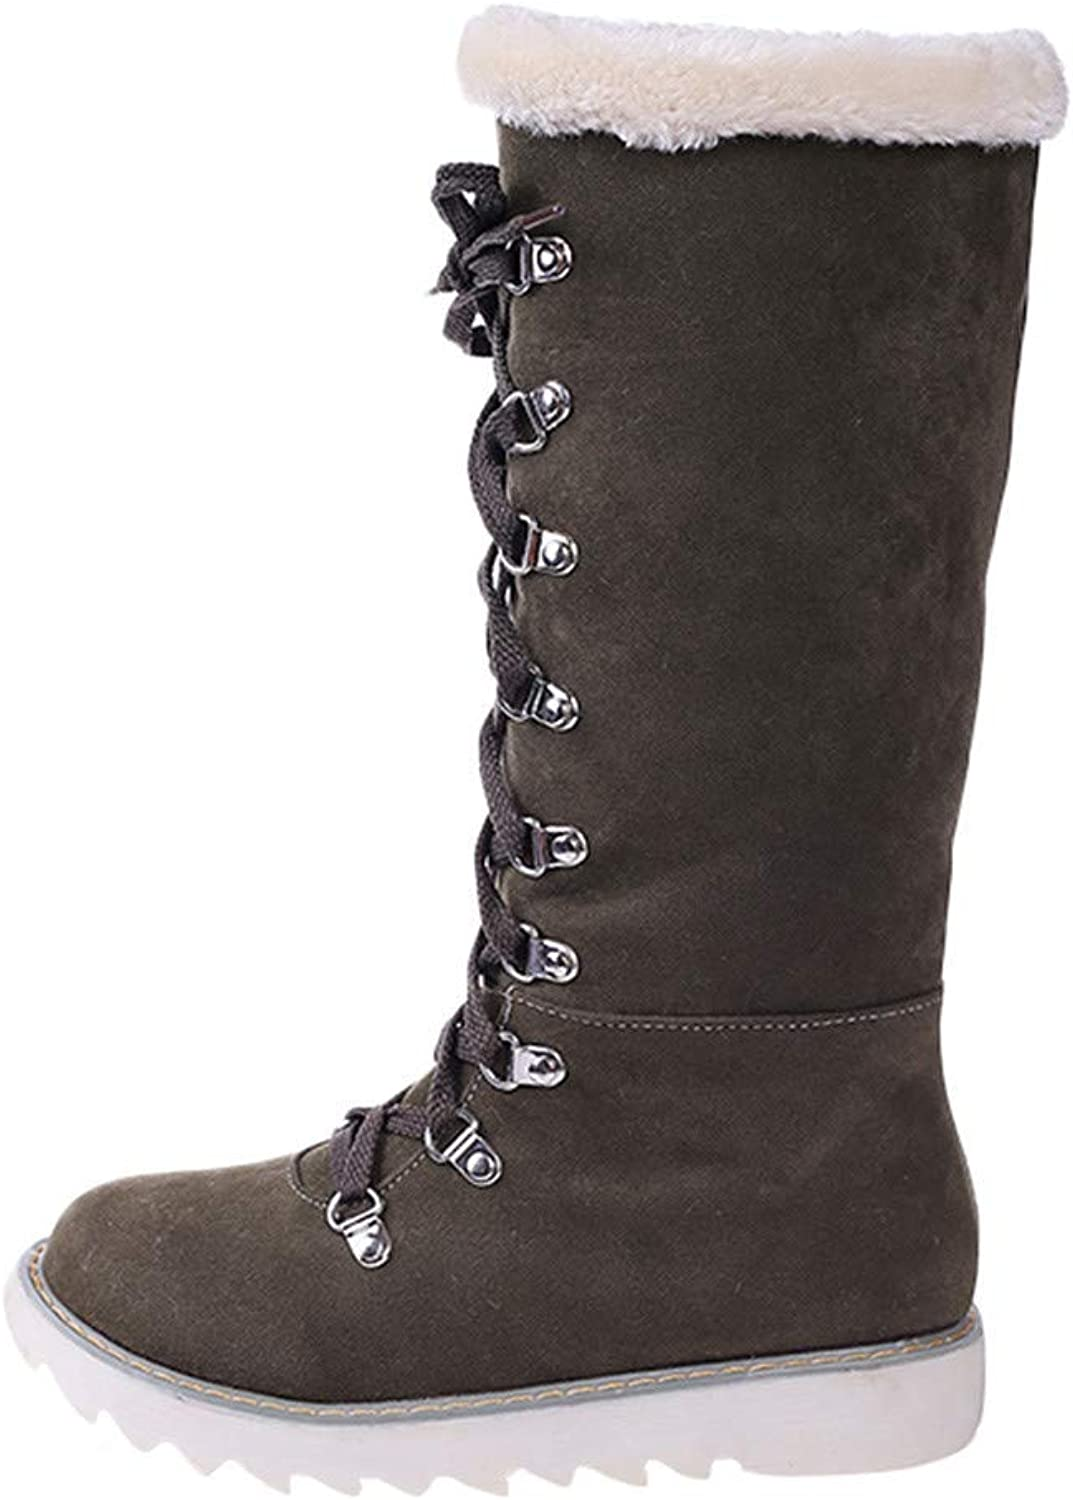 Lady Boots Women's shoes Platform Lace Up The Knee Anti Slip Round Toe Martin Snow Boots Wild Tight Super Casual Quality for Womens